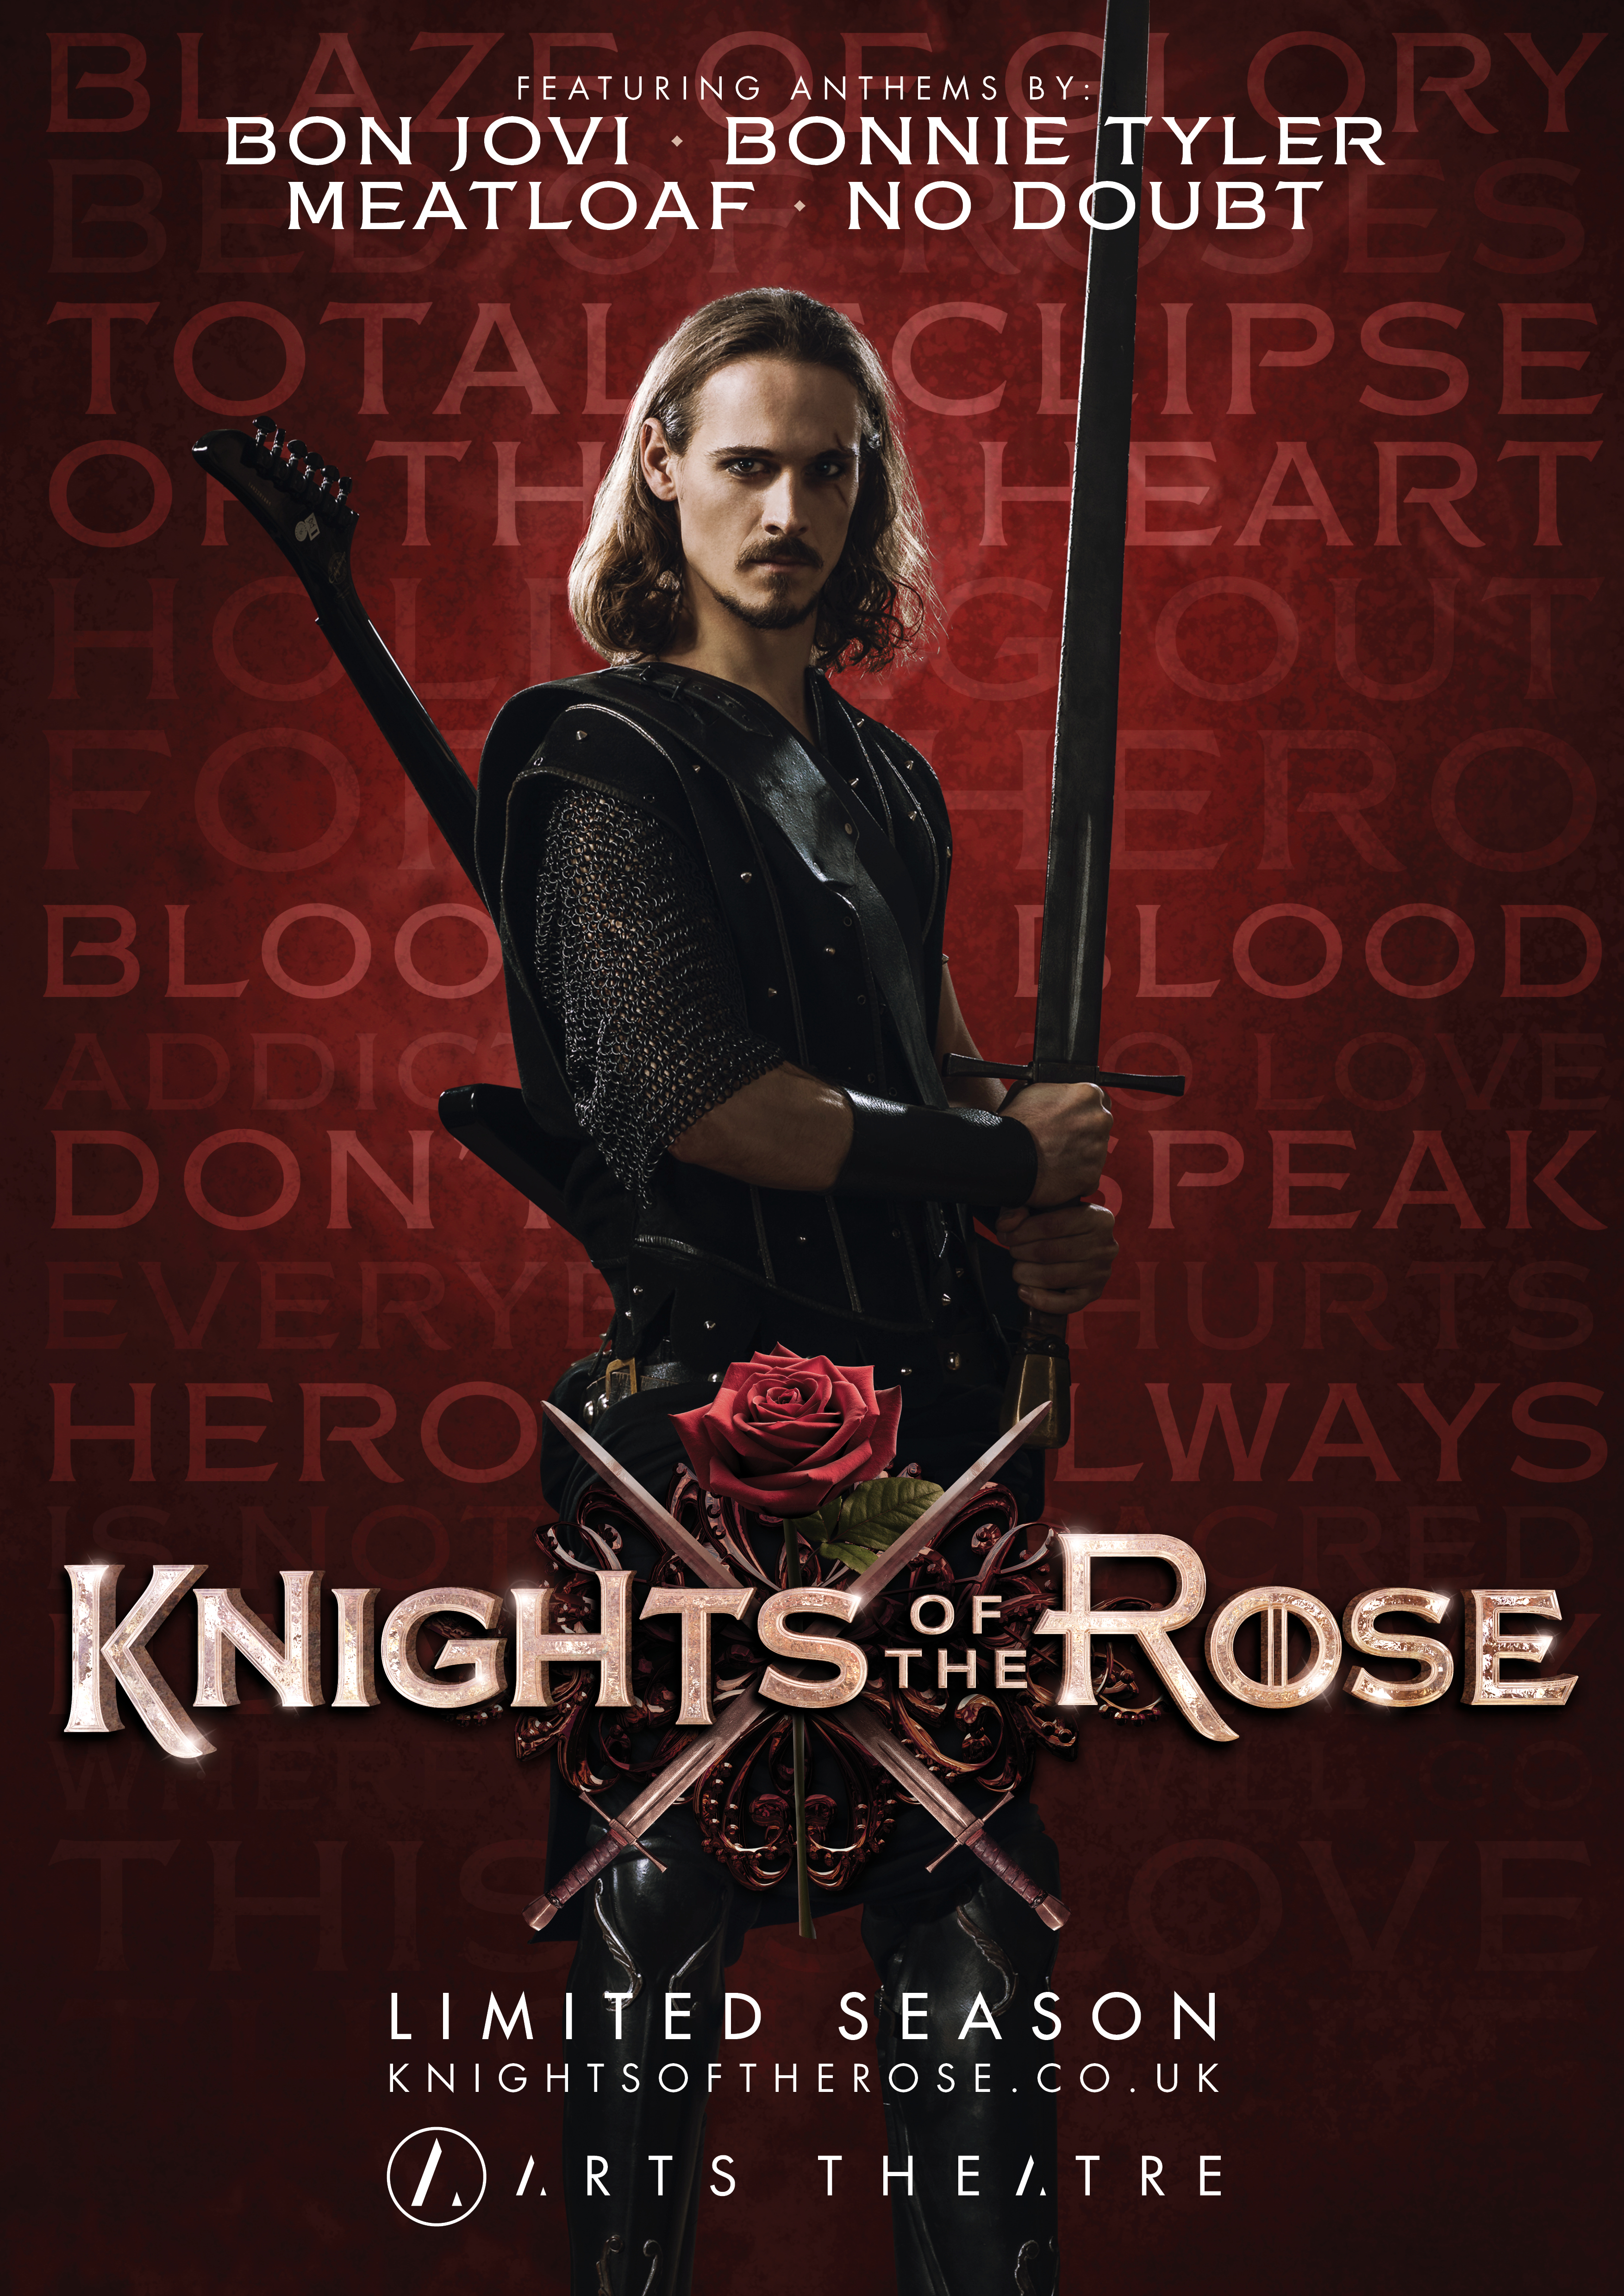 'Knights of the Roses' for I AM Marketing